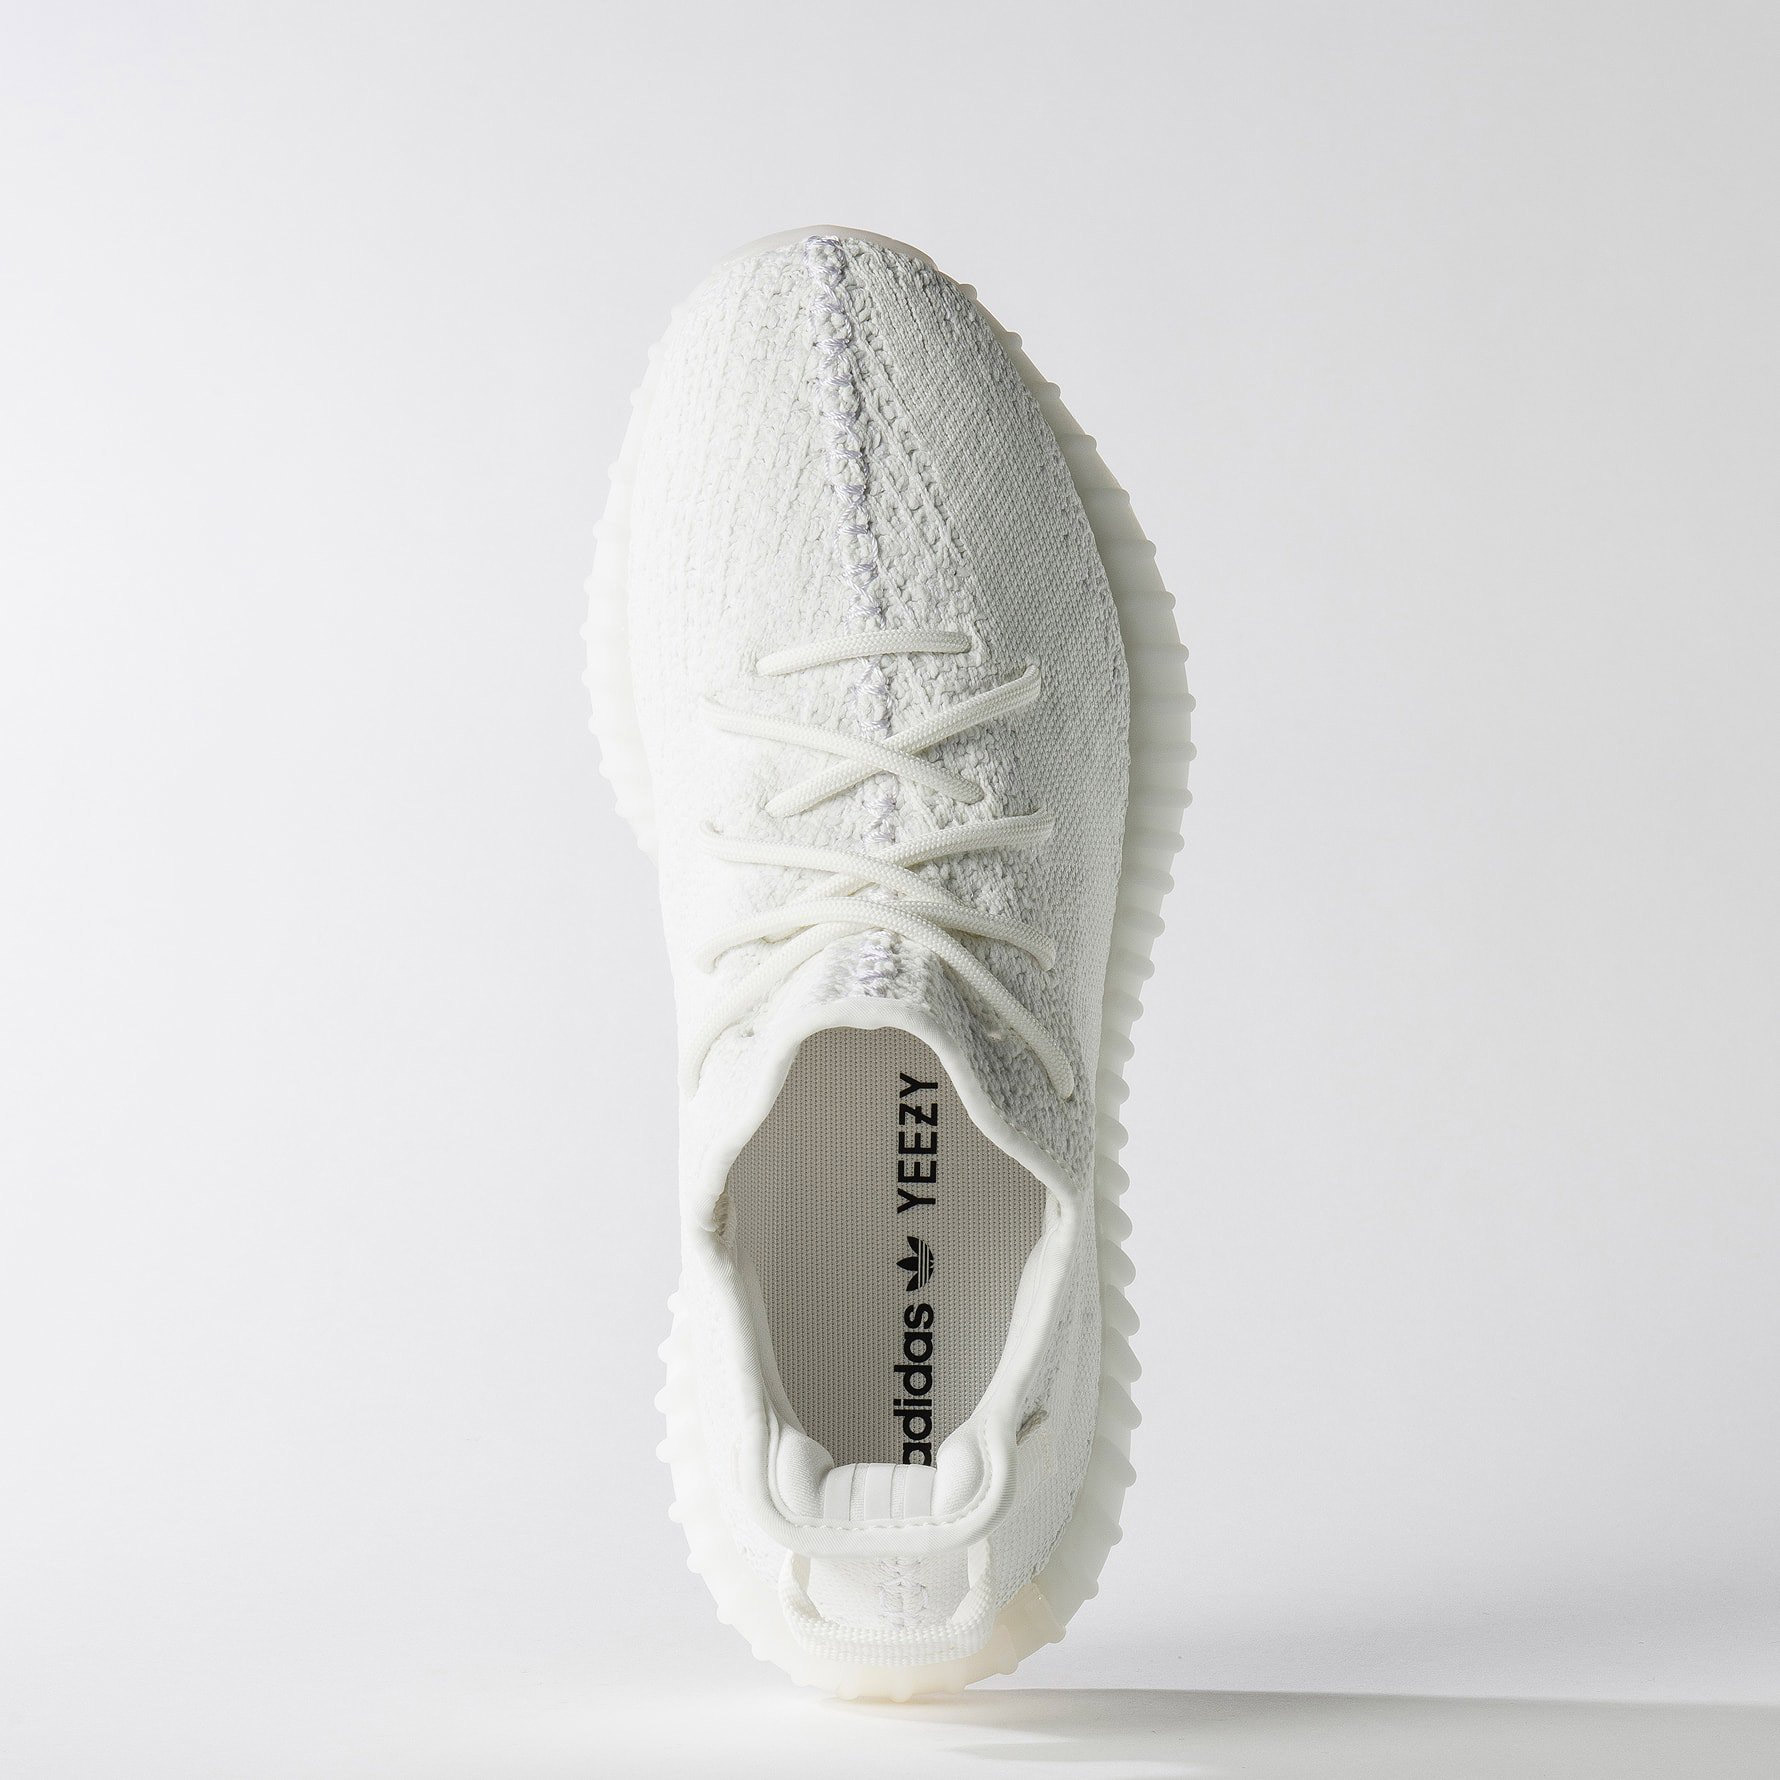 adidas Yeezy Boost 350 V2 Cream White CP9366 4